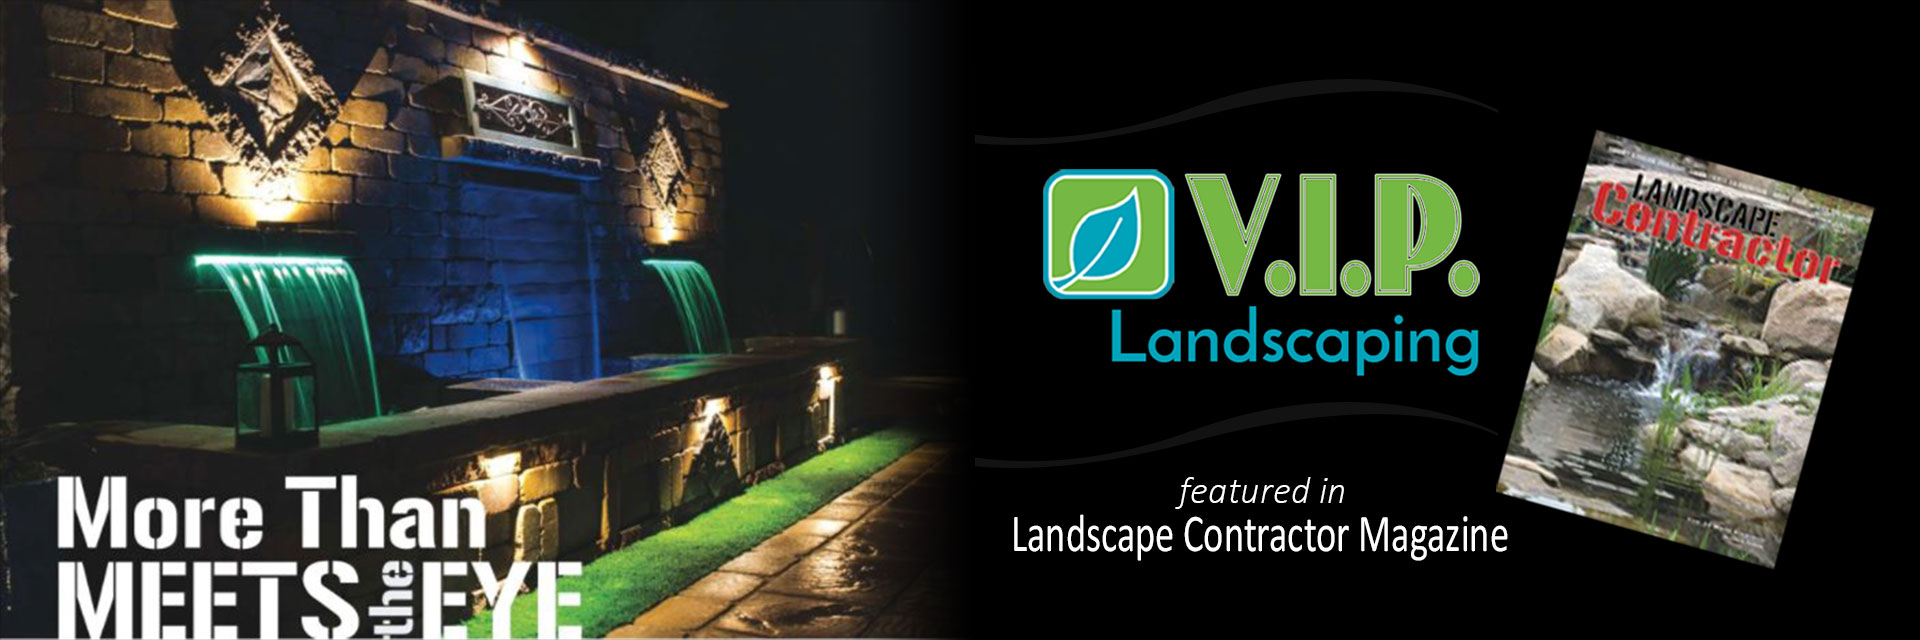 VIP Landscaping Featured in Landscape Contractor Magazine